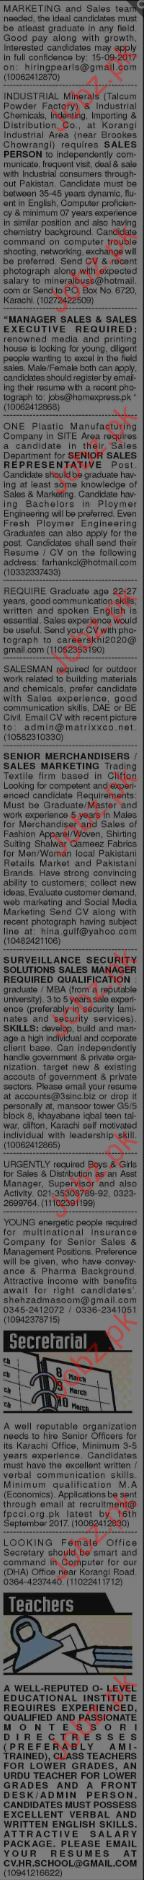 Marketing and Management Staff required